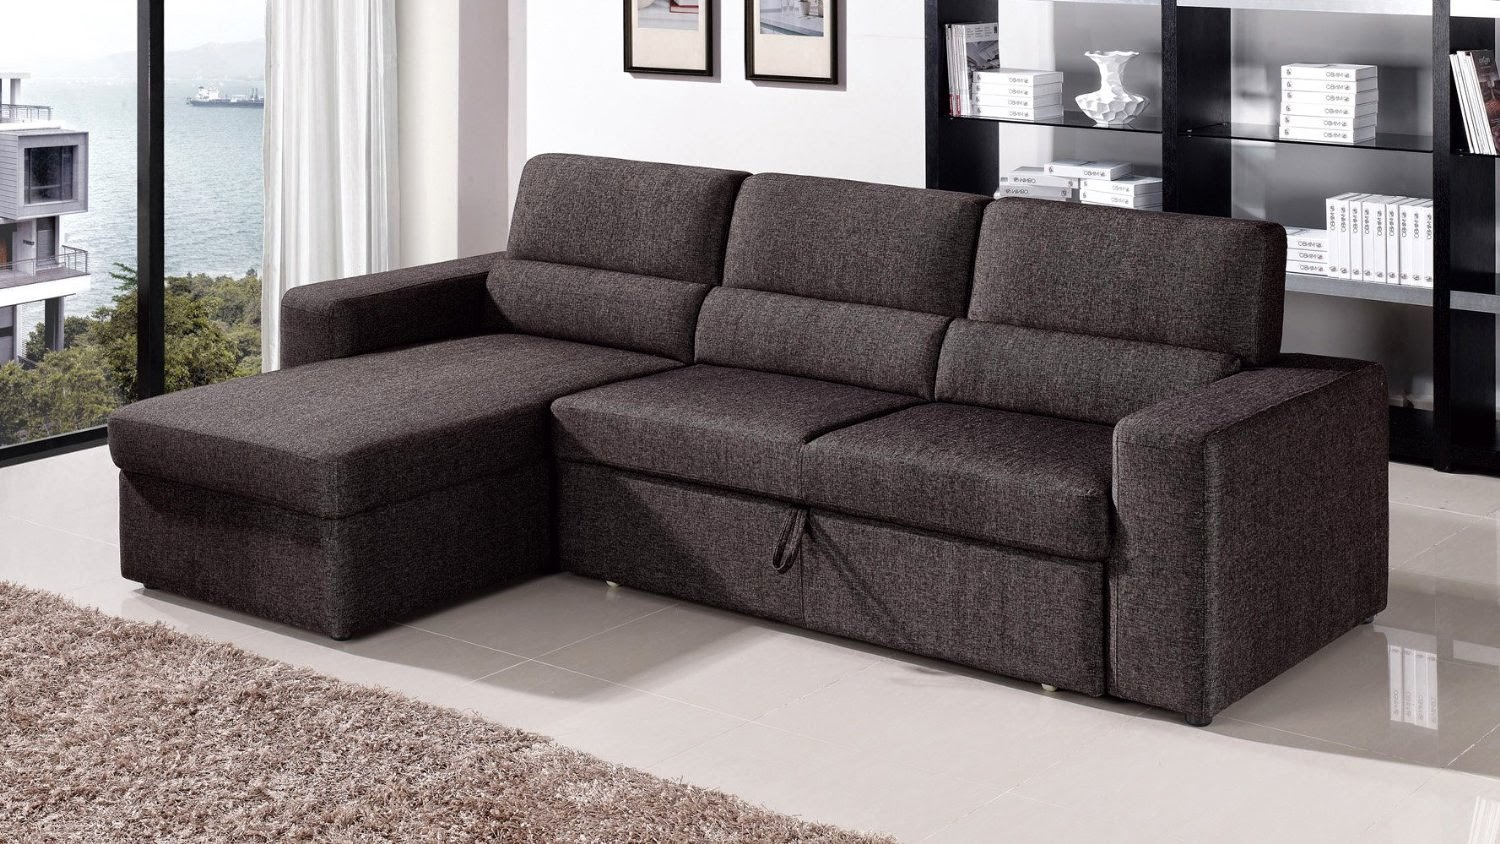 Pull out couch: sectional couch with pull out bed